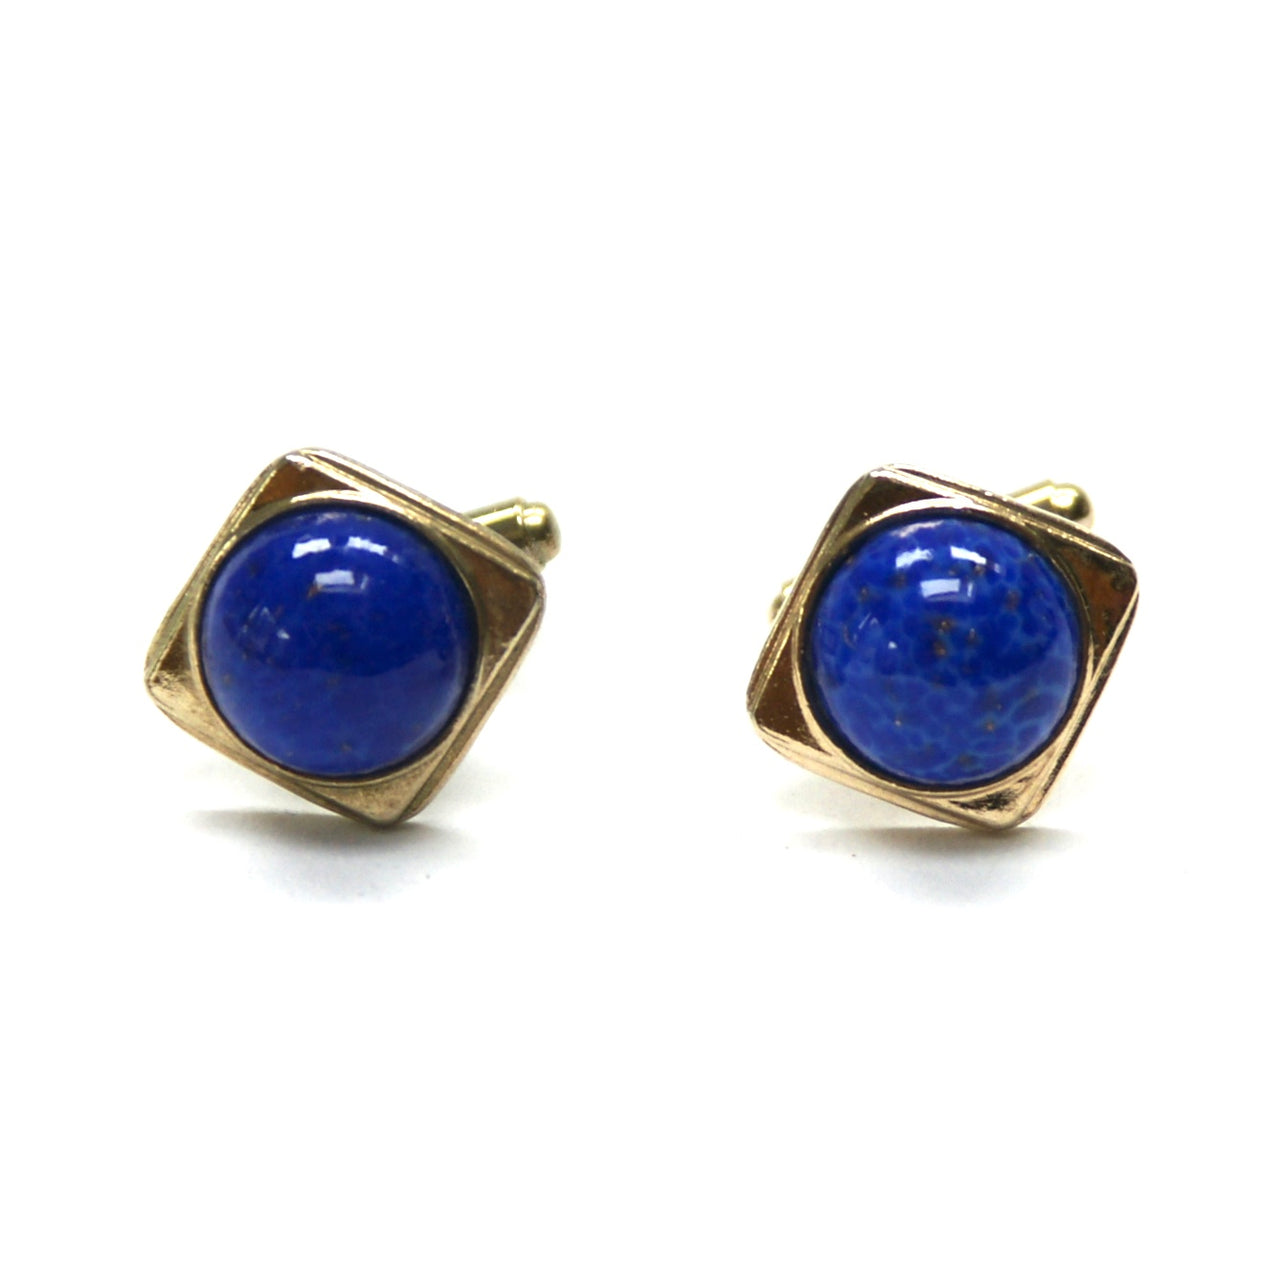 Eclectica Vintage 1950s Blue Glass and gold plated cufflinks unisex women's men's